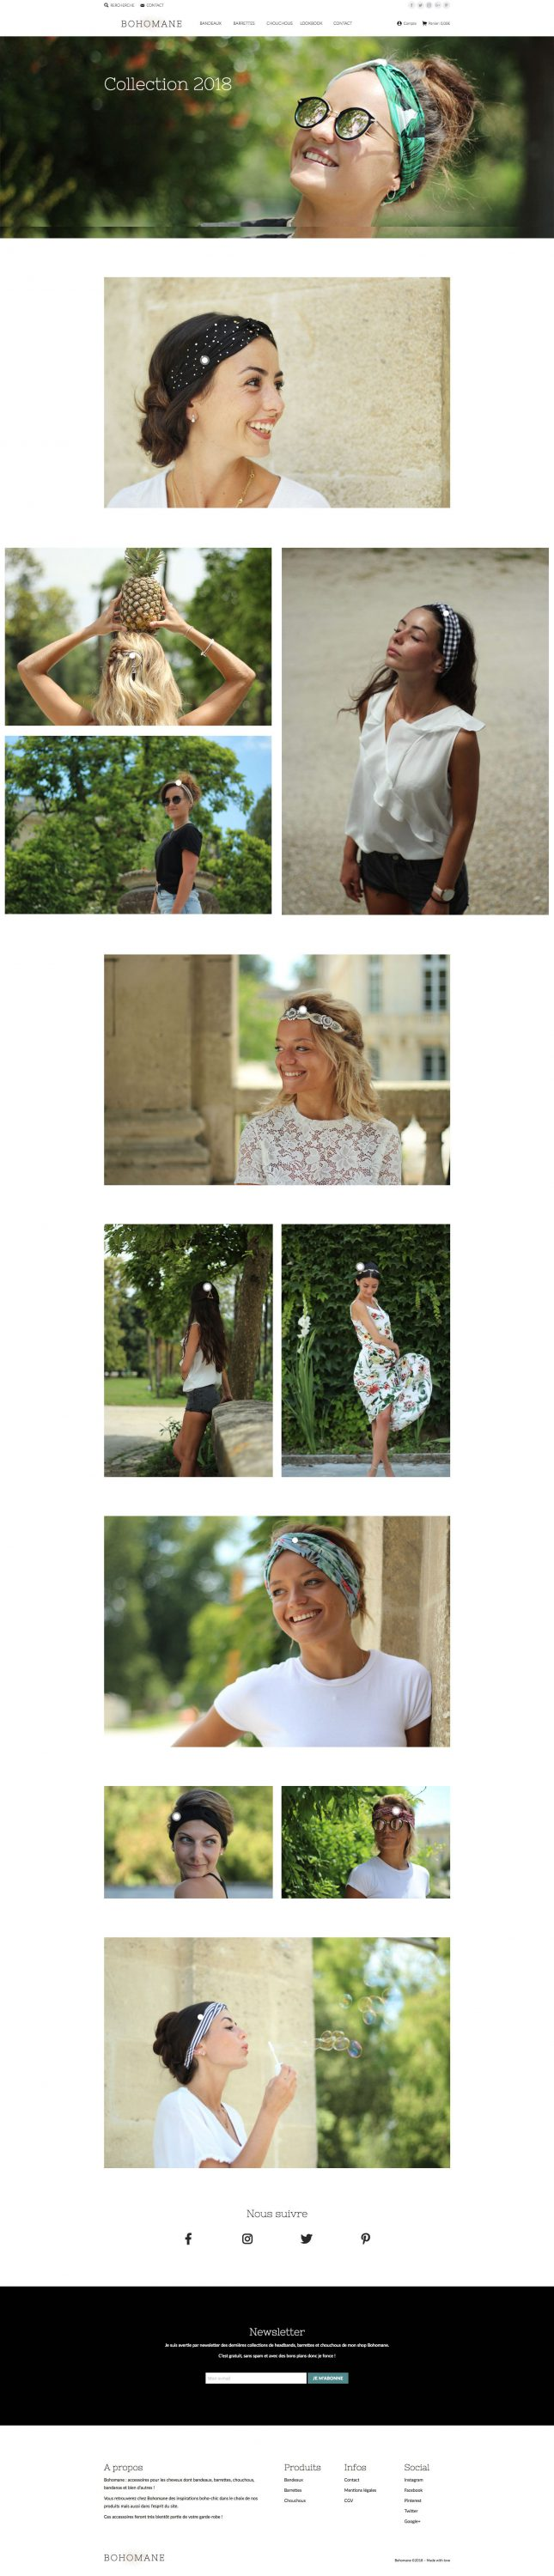 boutique-headbands-lookbook-bohomane